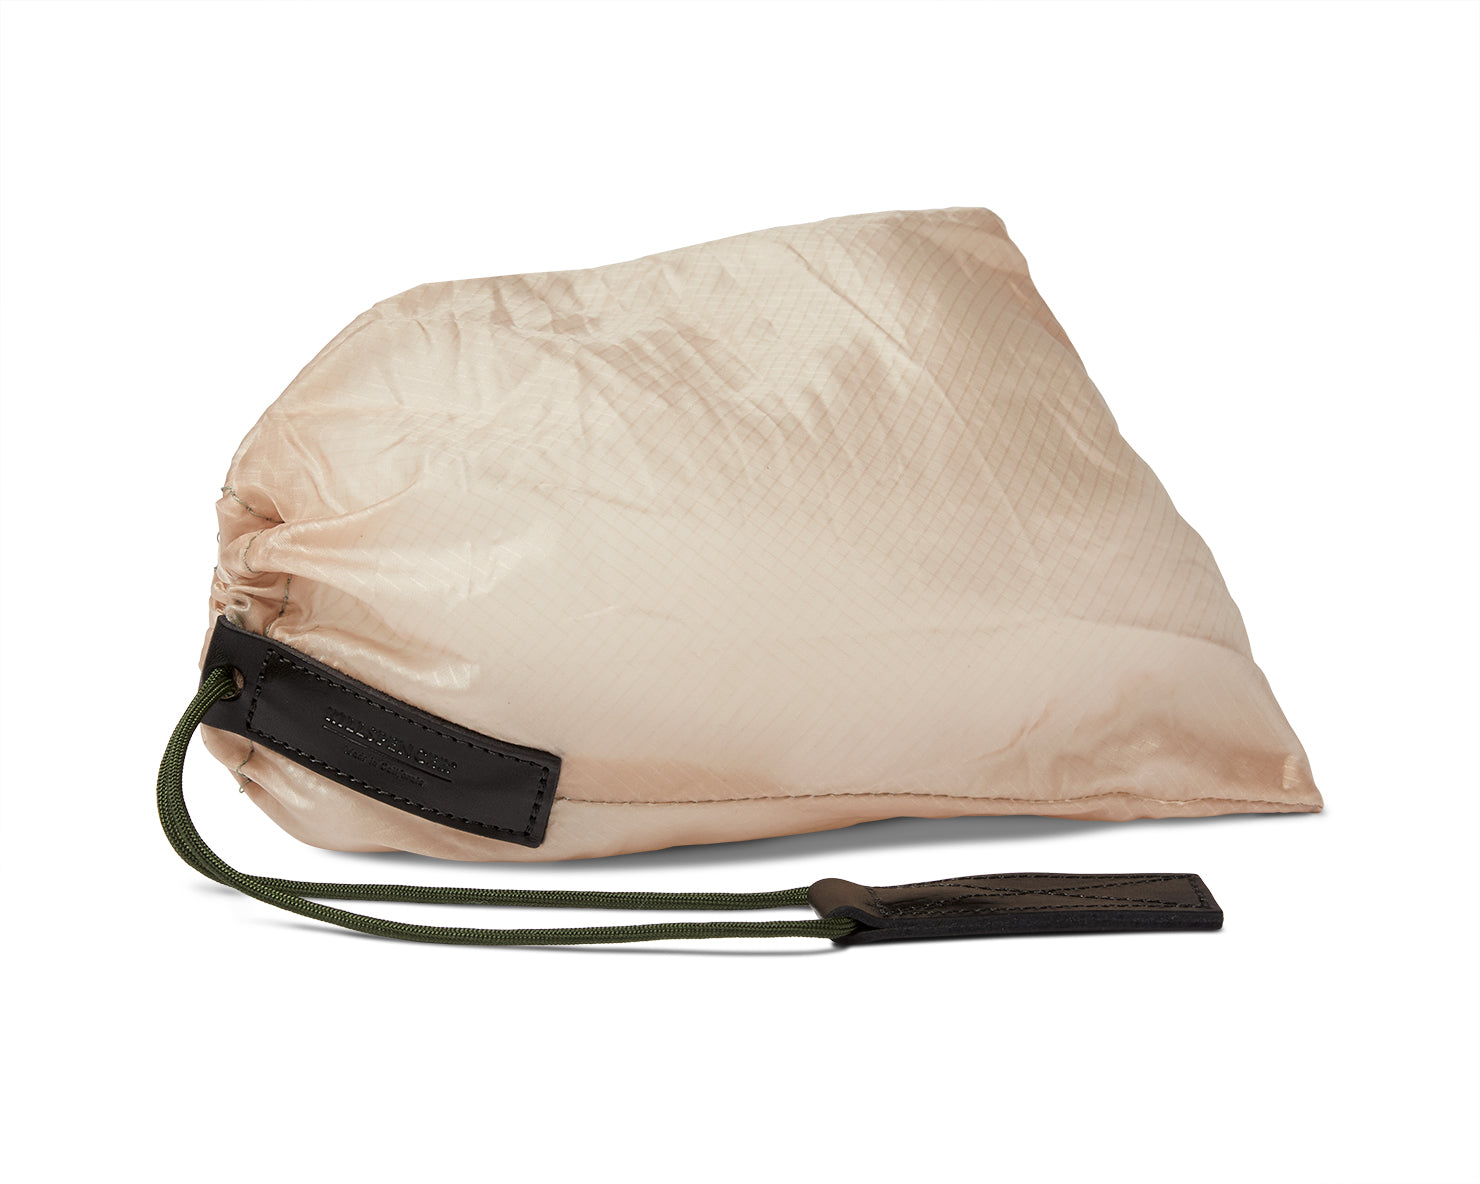 PARACHUTE BAG 2.0 - Large Accessory Bag | KILLSPENCER® - Tan Parachute